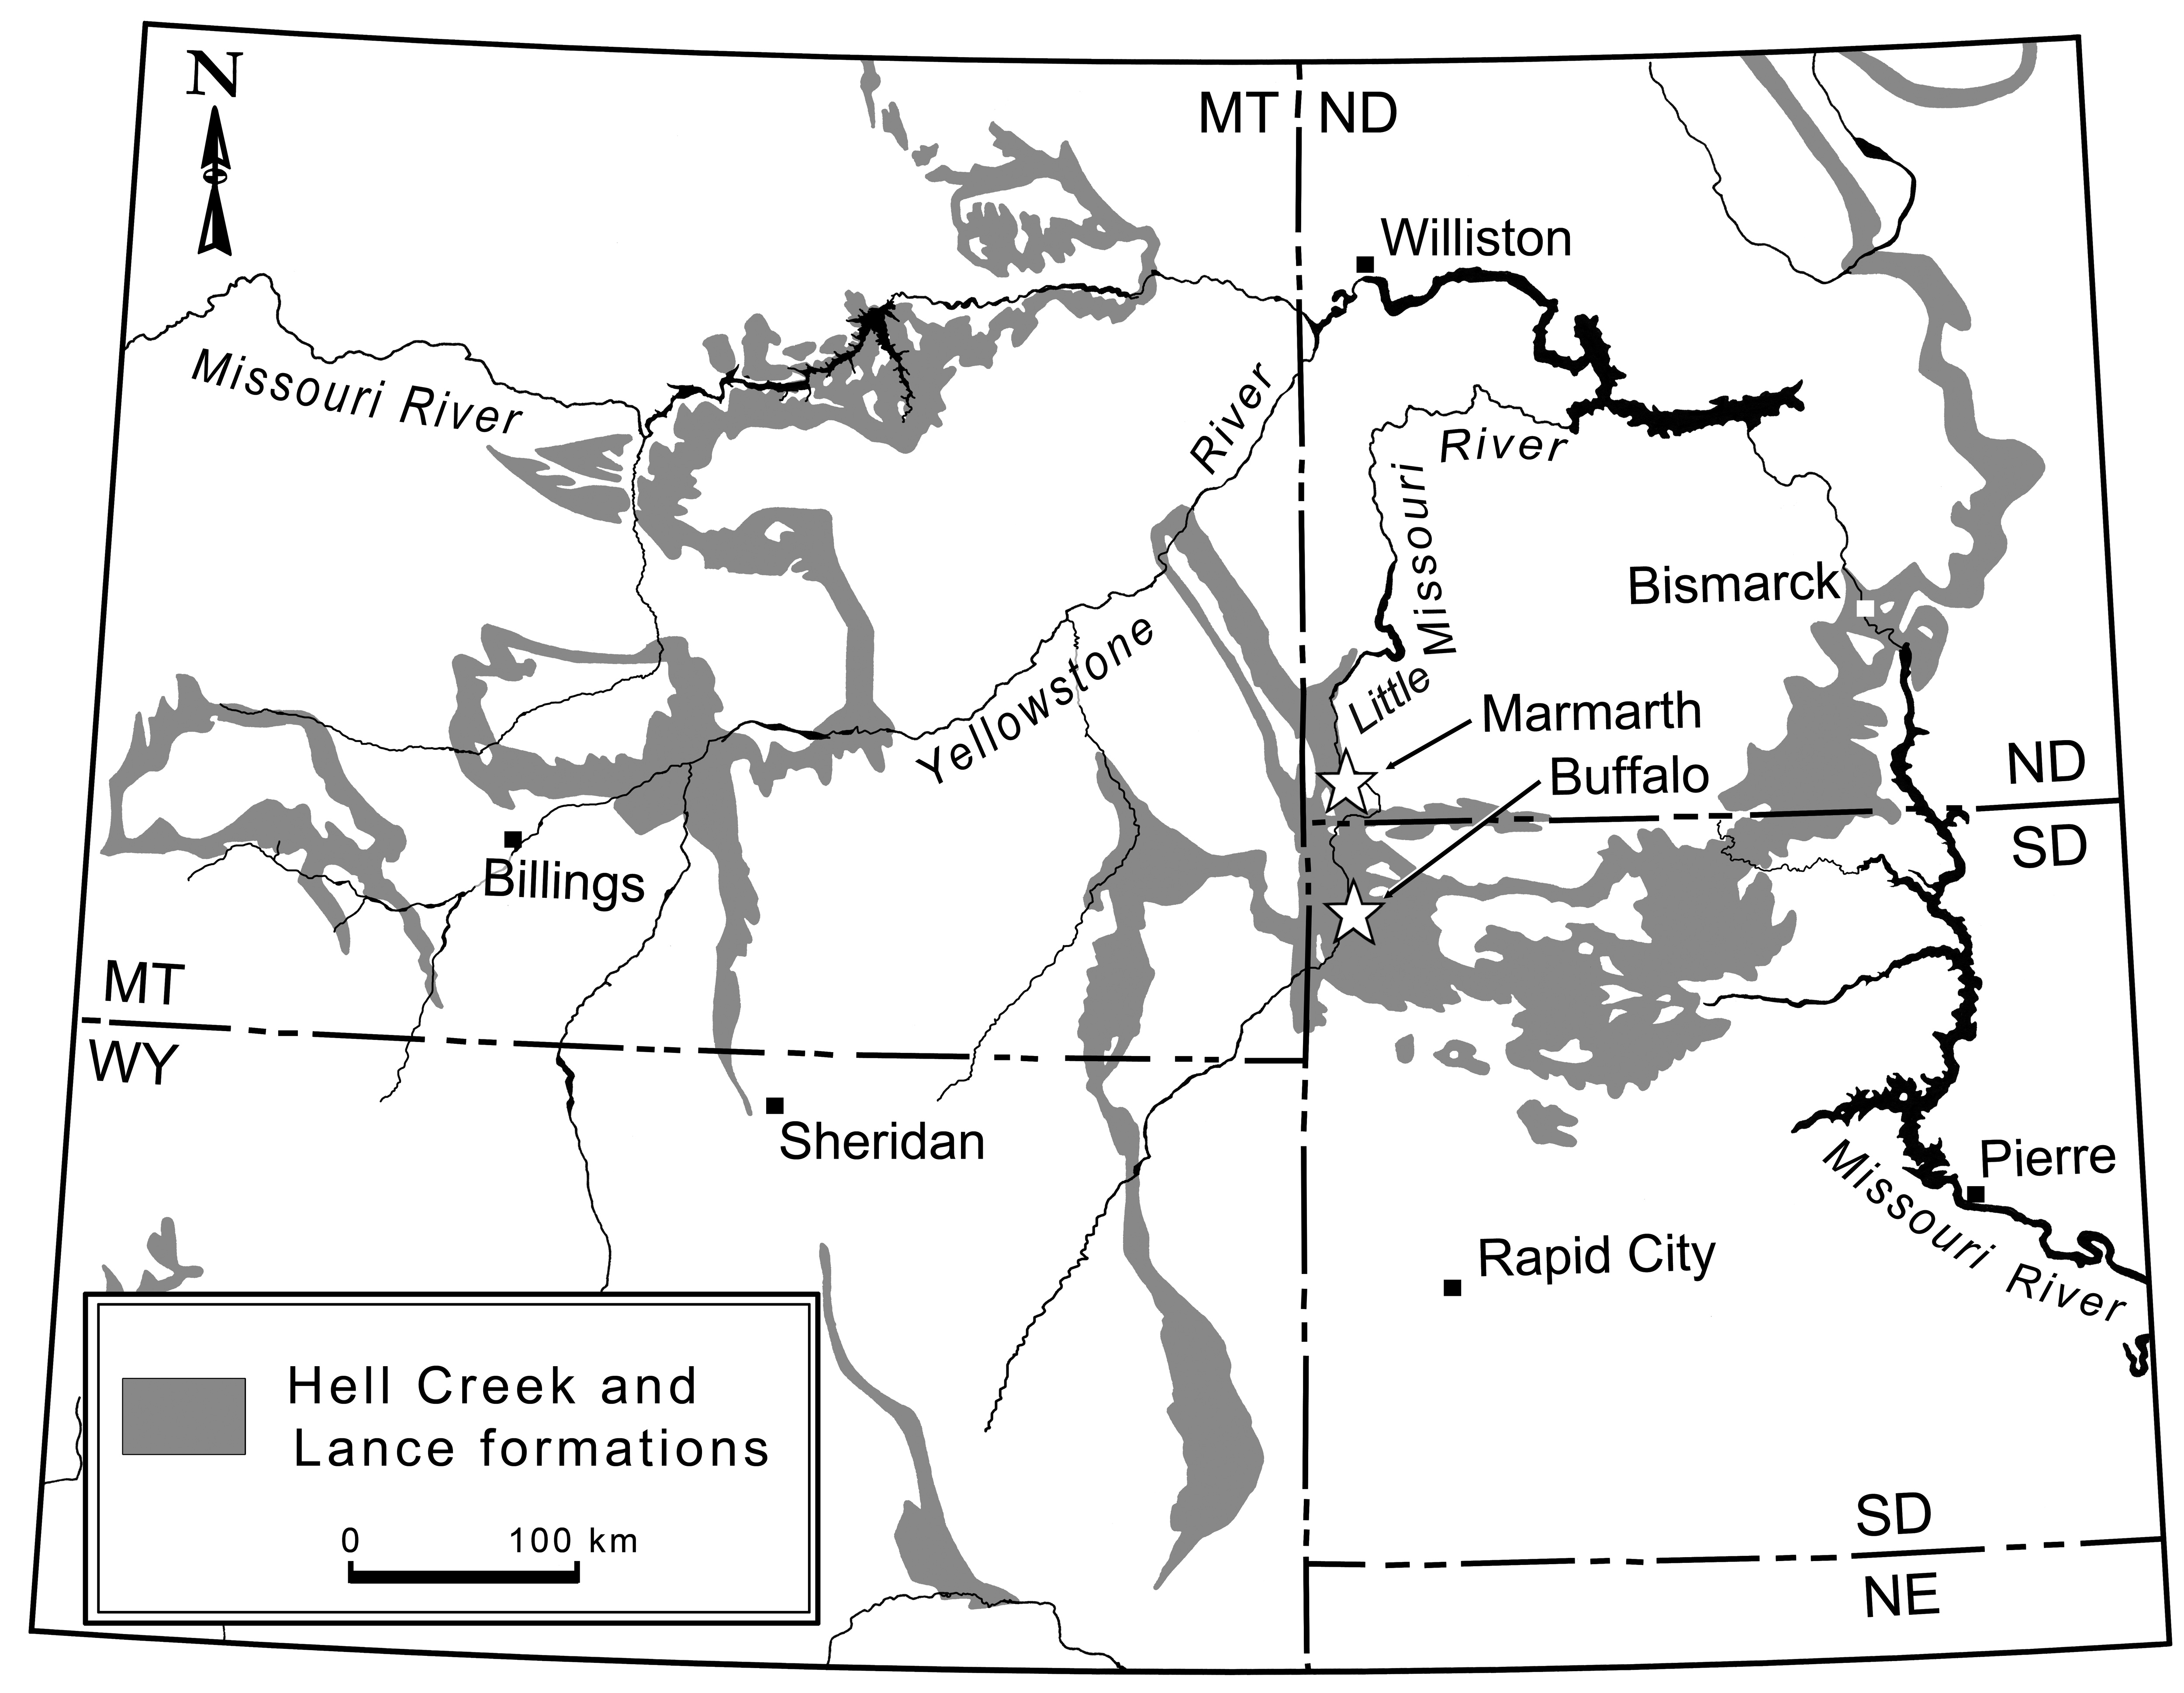 The Hell Creek formation, where three Anzu wyliei fossils were uncovered, lies in North and South Dakota. Image courtesy of Carnegie Museum of Natural History.